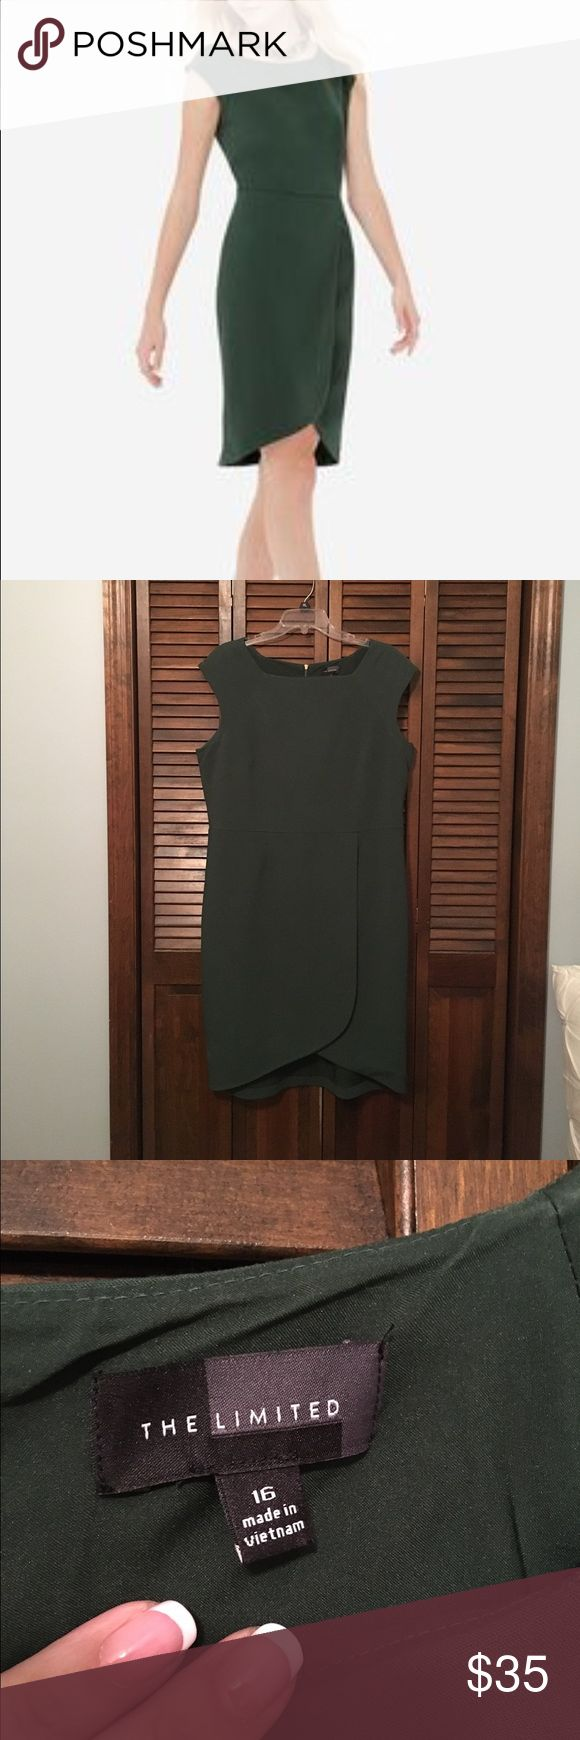 The Limited Tulip Skirt Sheath Dress - Size 16 The Limited Tulip Skirt Sheath Dress in dark green. Size 16. Perfect for the office! Beautiful tailored look. The thick fabric smoothes any wrinkles and hangs perfectly. Gold zippered detail in the back. The Limited Dresses